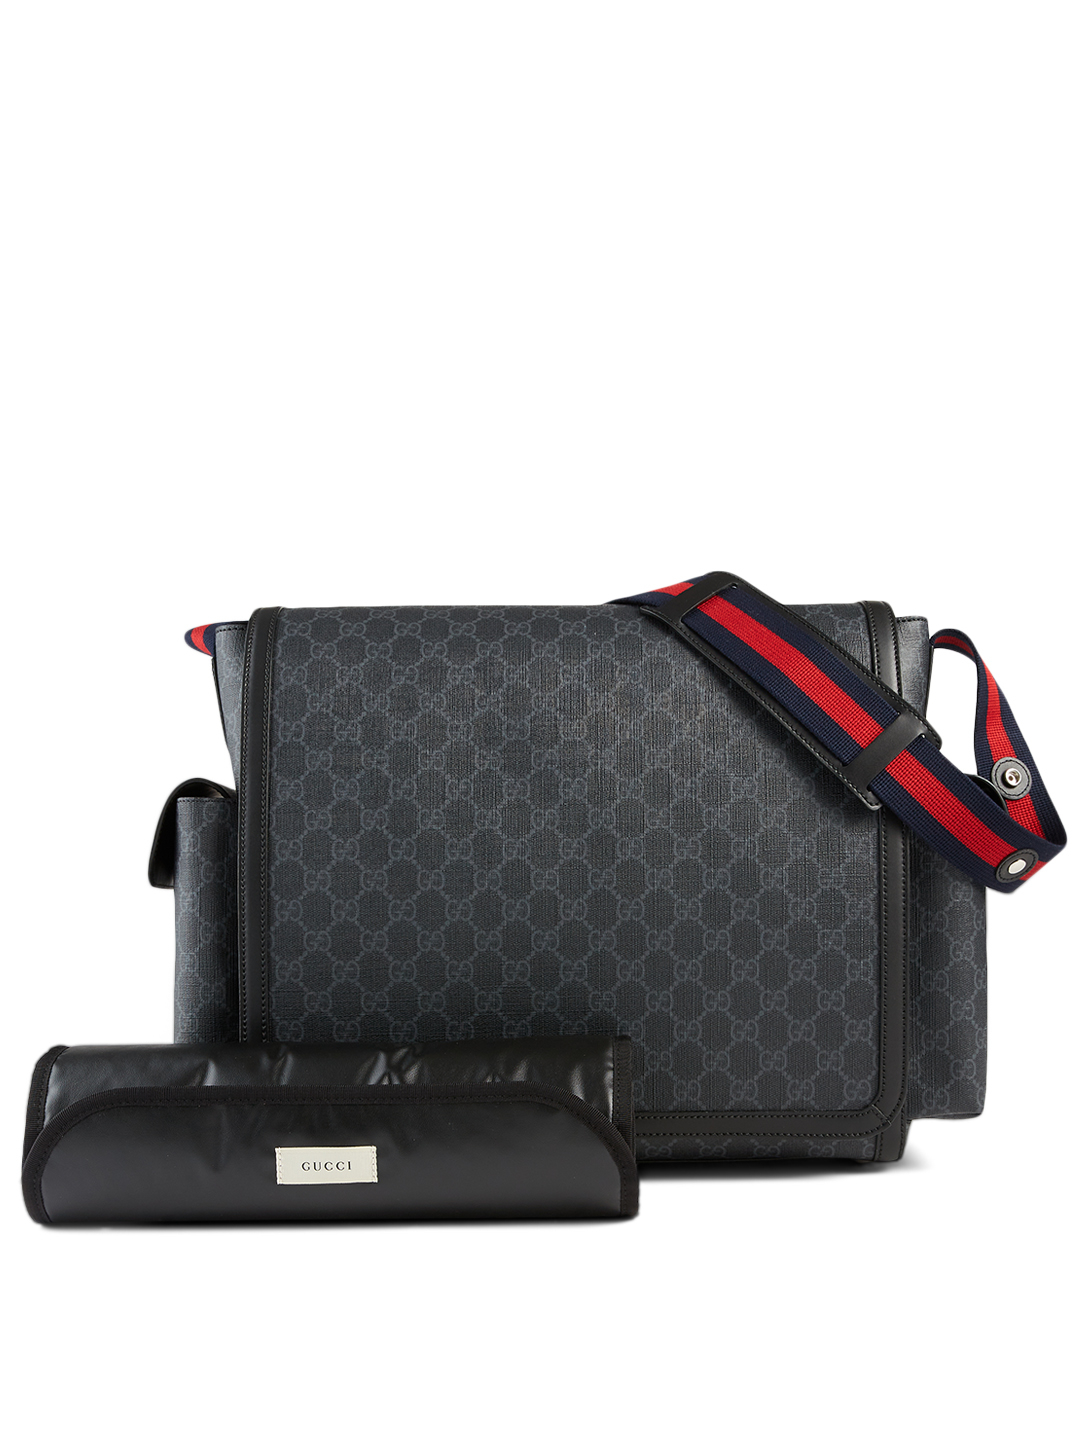 GUCCI GG Supreme Baby Diaper Bag Women's Black